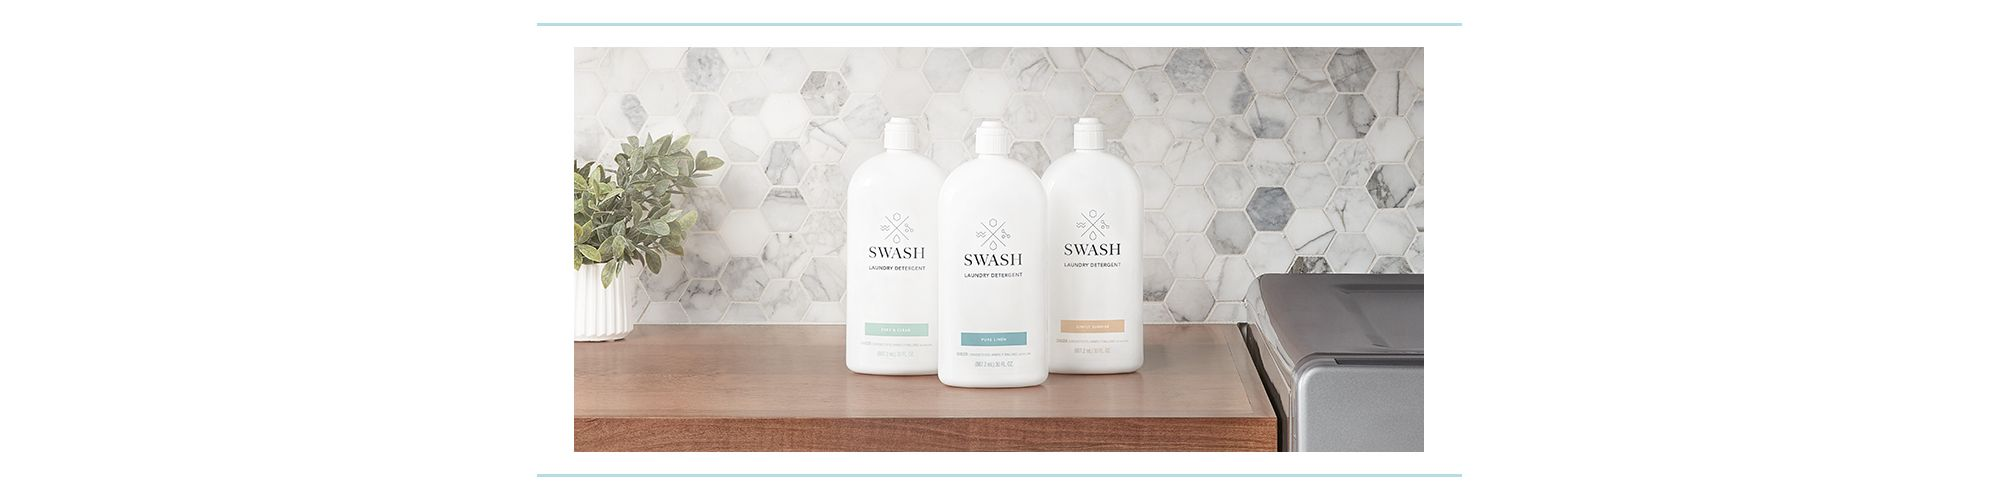 Three bottles of Swash lined up on a counter.